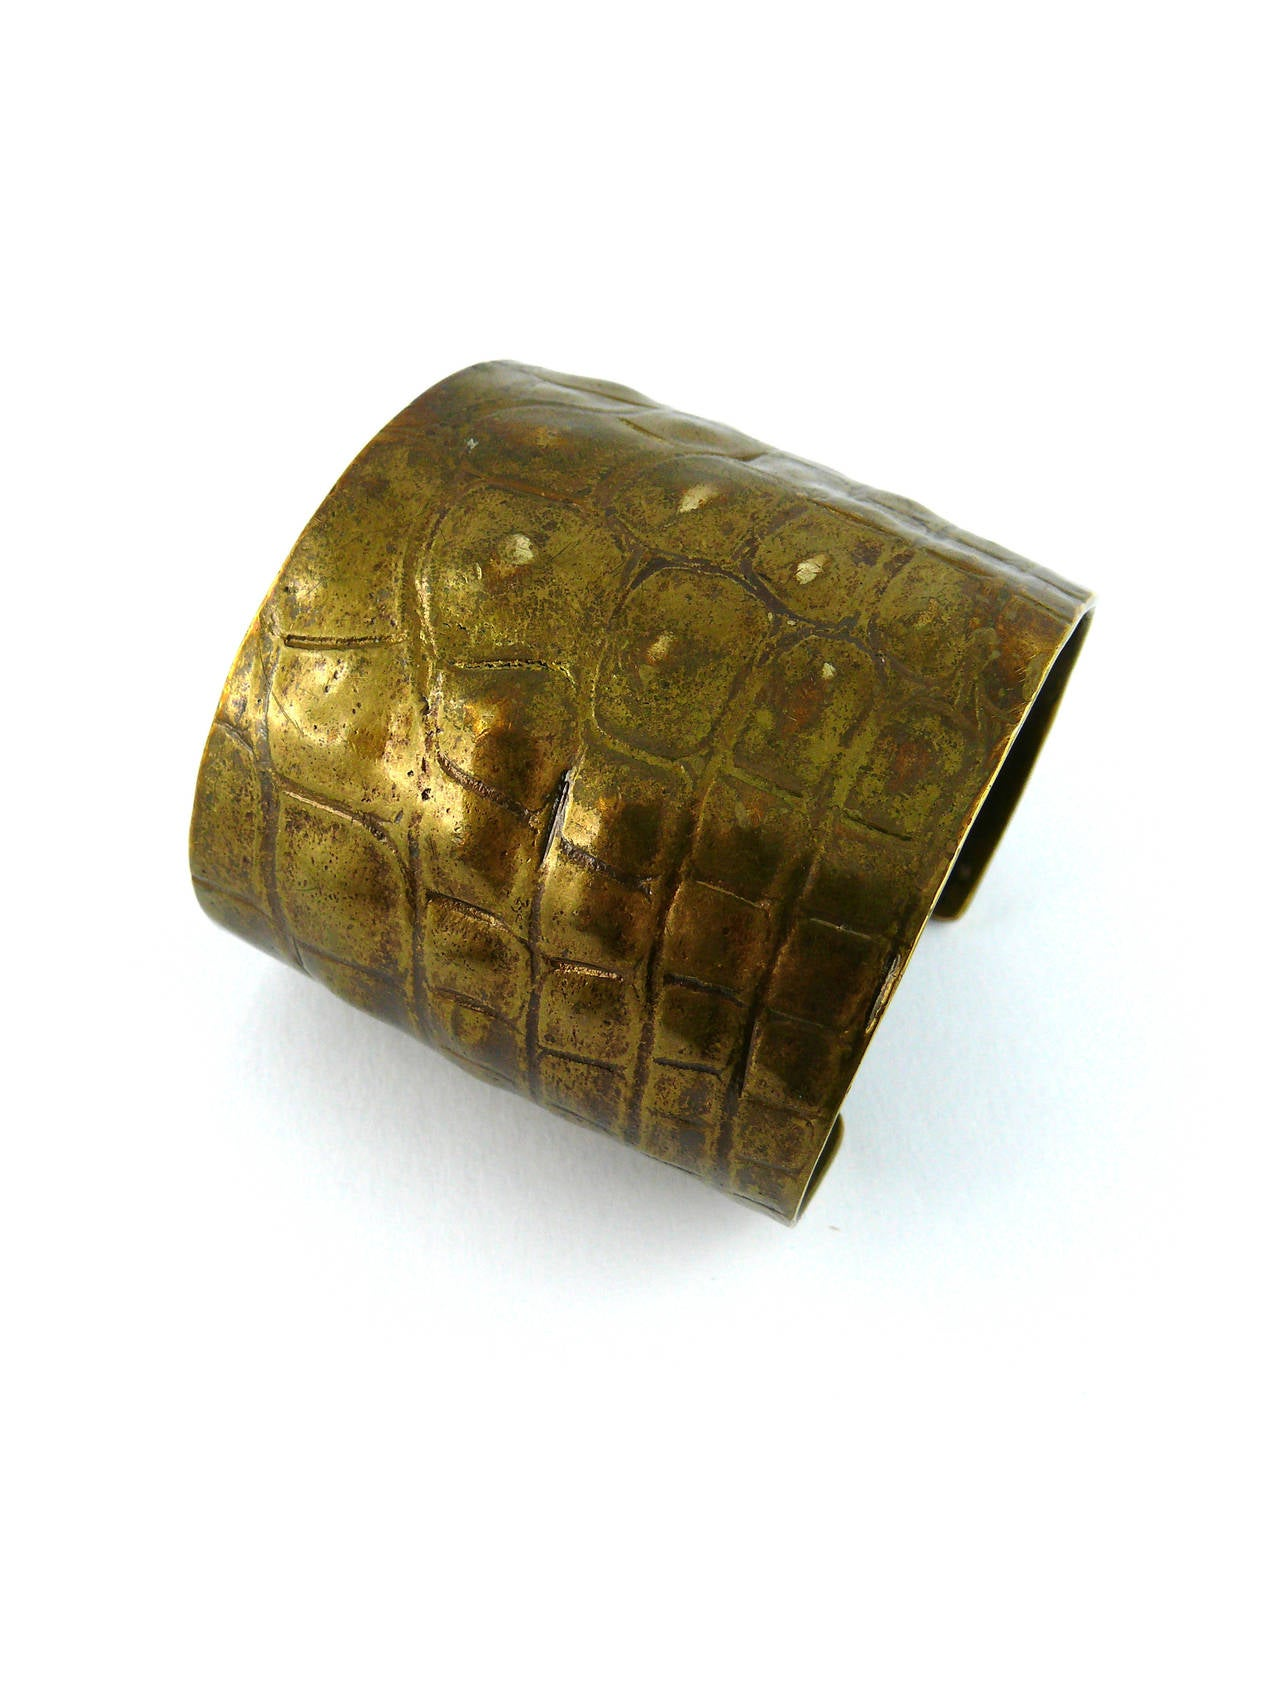 Yves Saint Laurent YSL by Tom Ford Croc-Embossed Cuff Bracelet For Sale 2